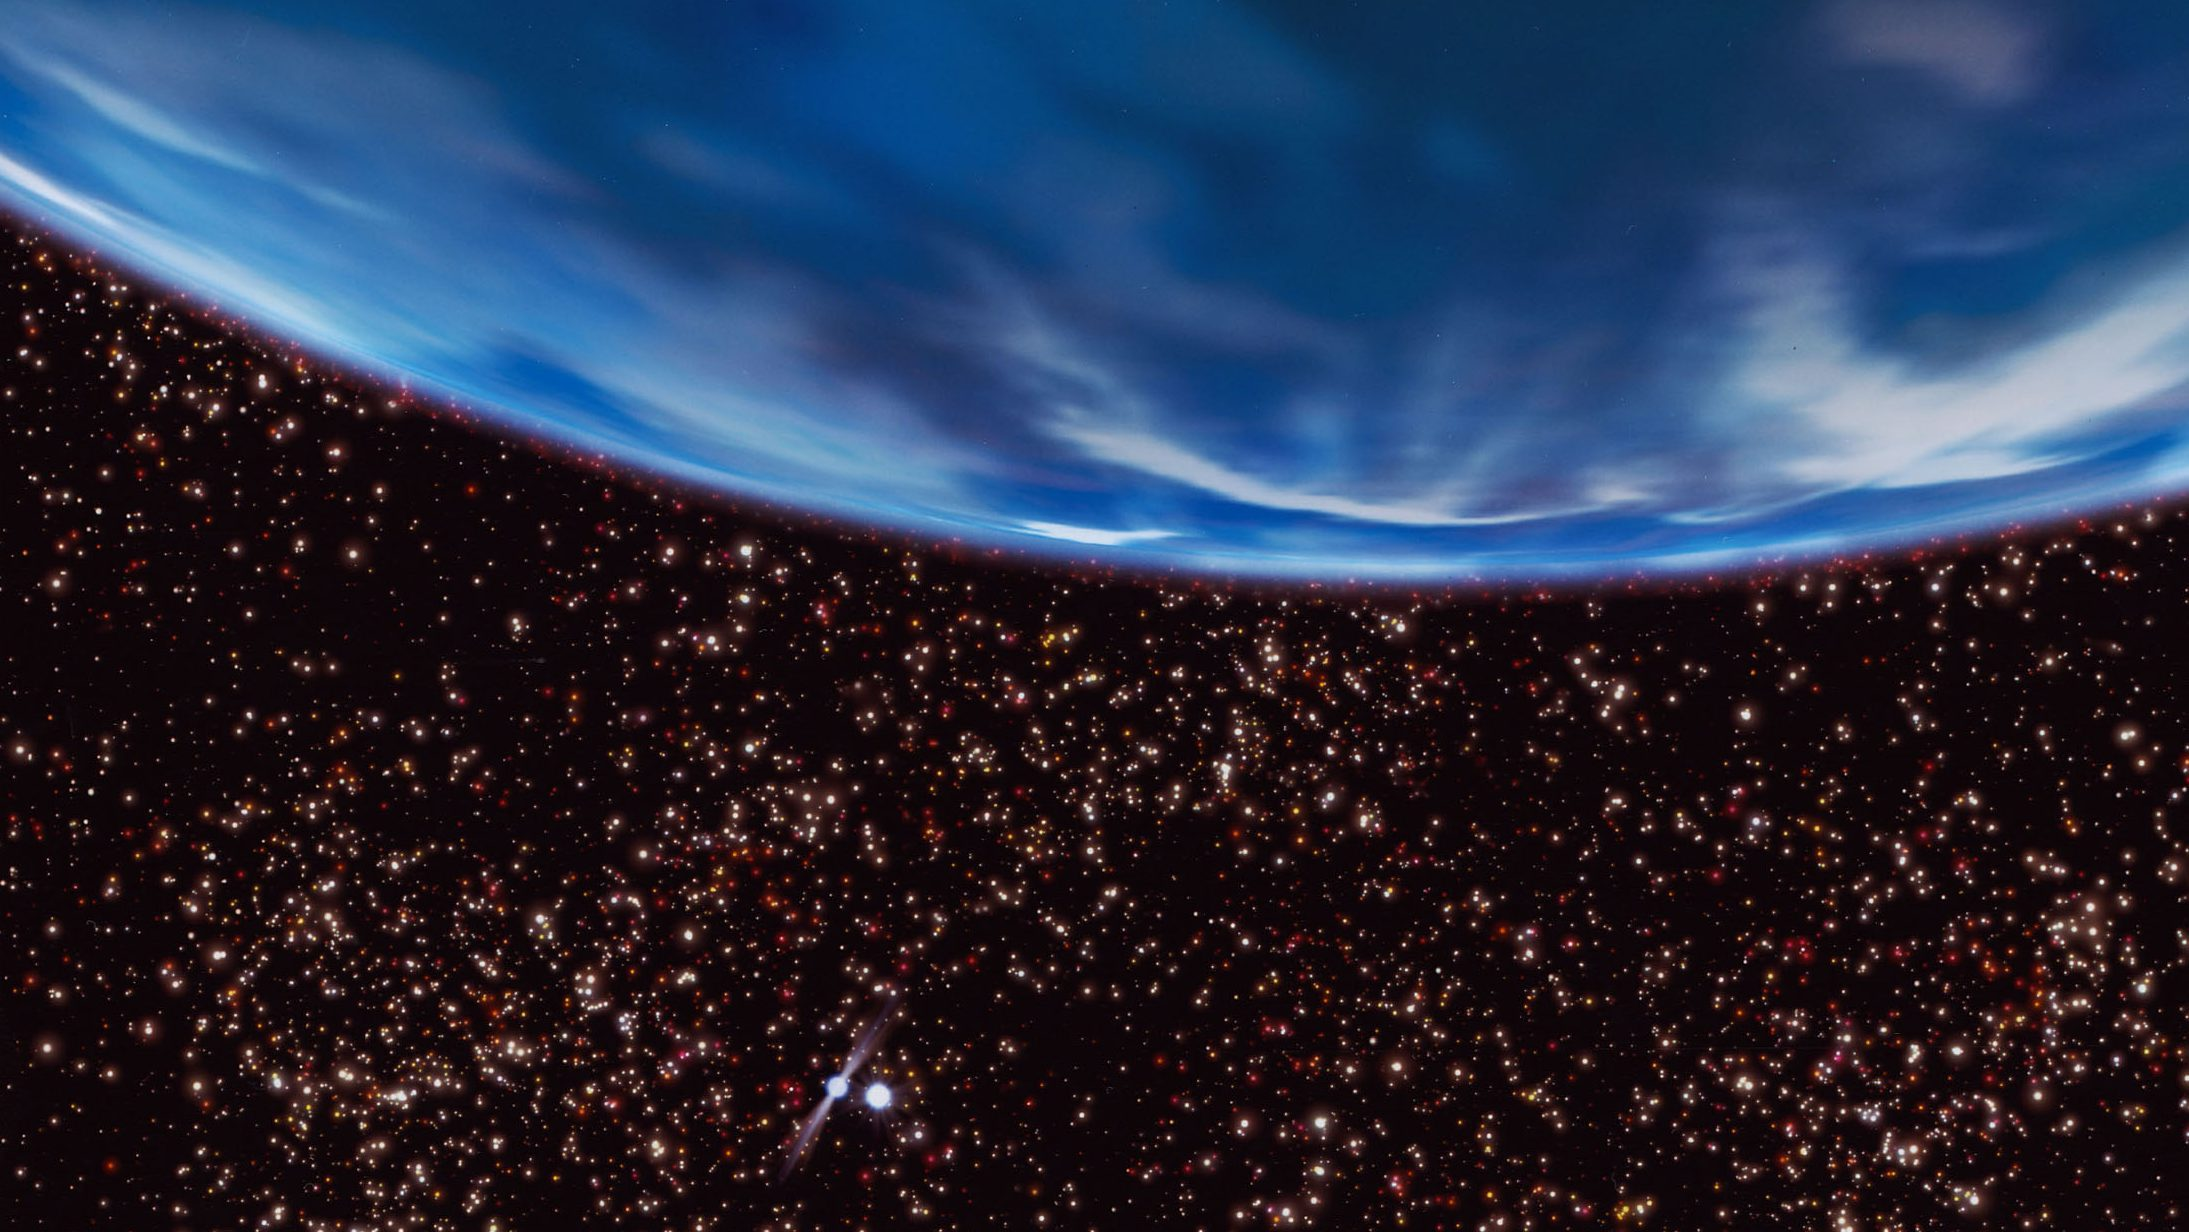 A rich starry sky fills the view from an ancient gas-giant planet in the core of the globular star cluster M4, as imagined in this artist's concept. The 13-billion-year-old planet orbits a helium white-dwarf star and the millisecond pulsar B1620-26, seen at lower left.